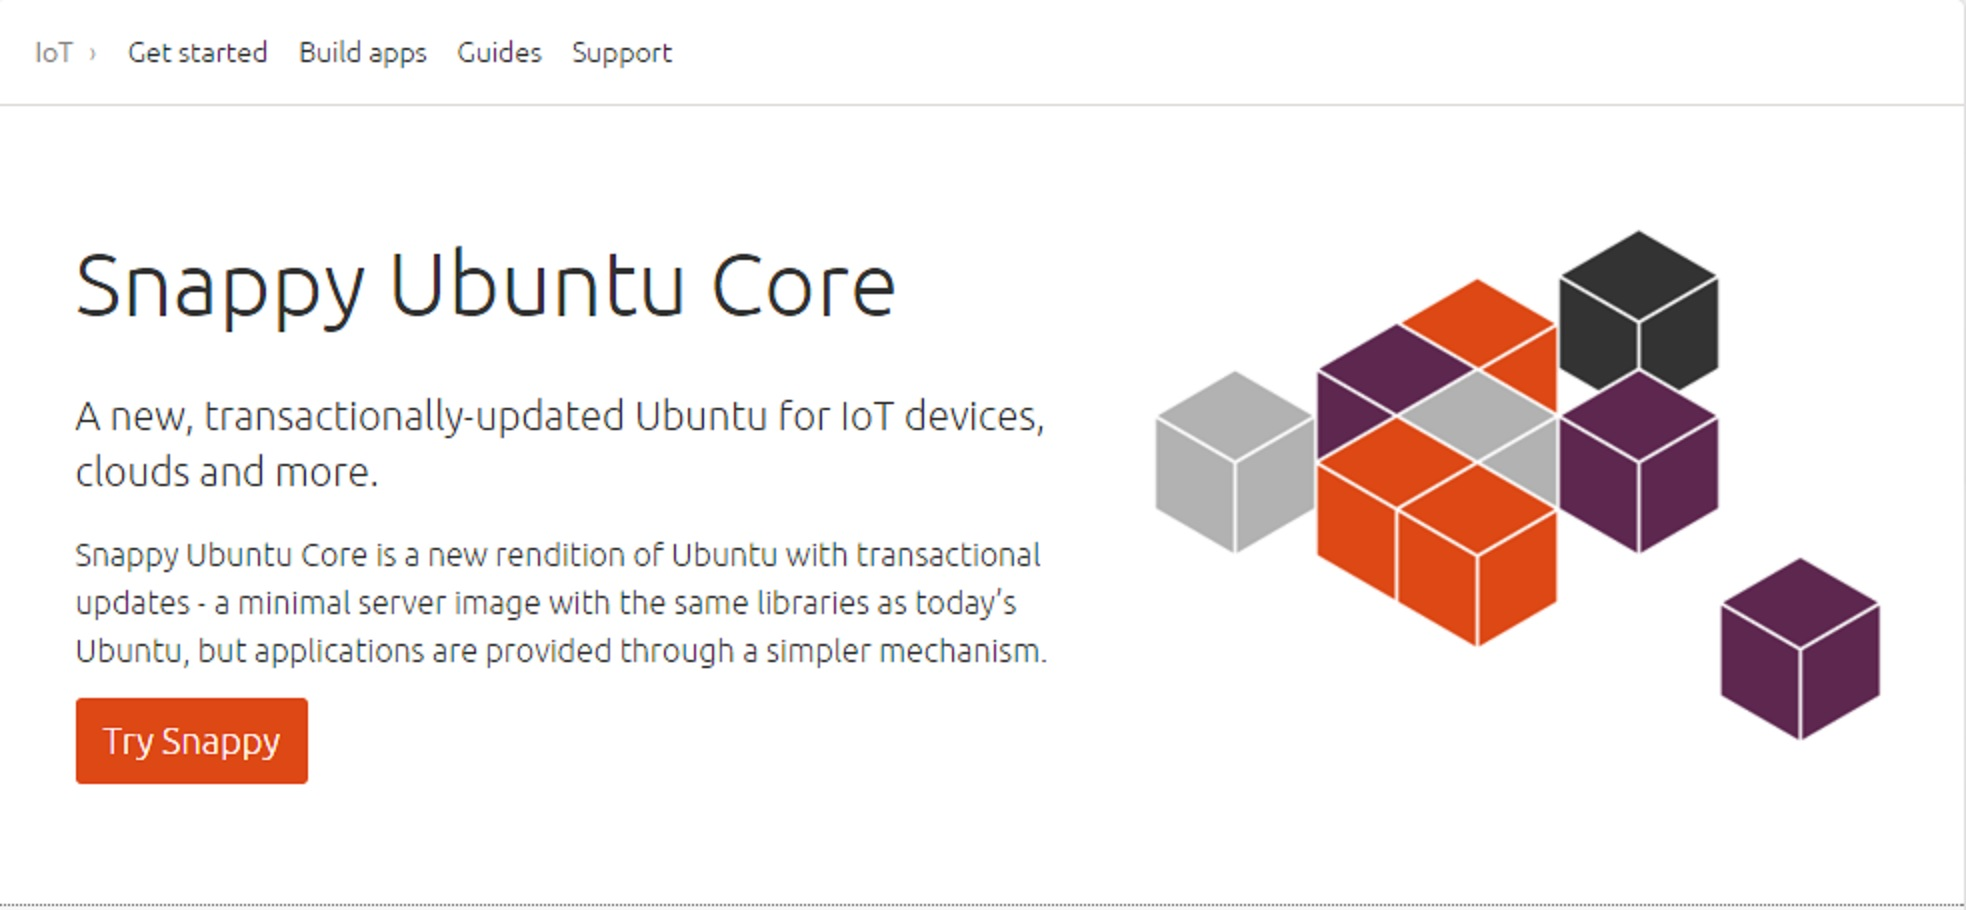 Snappy Ubuntu Core